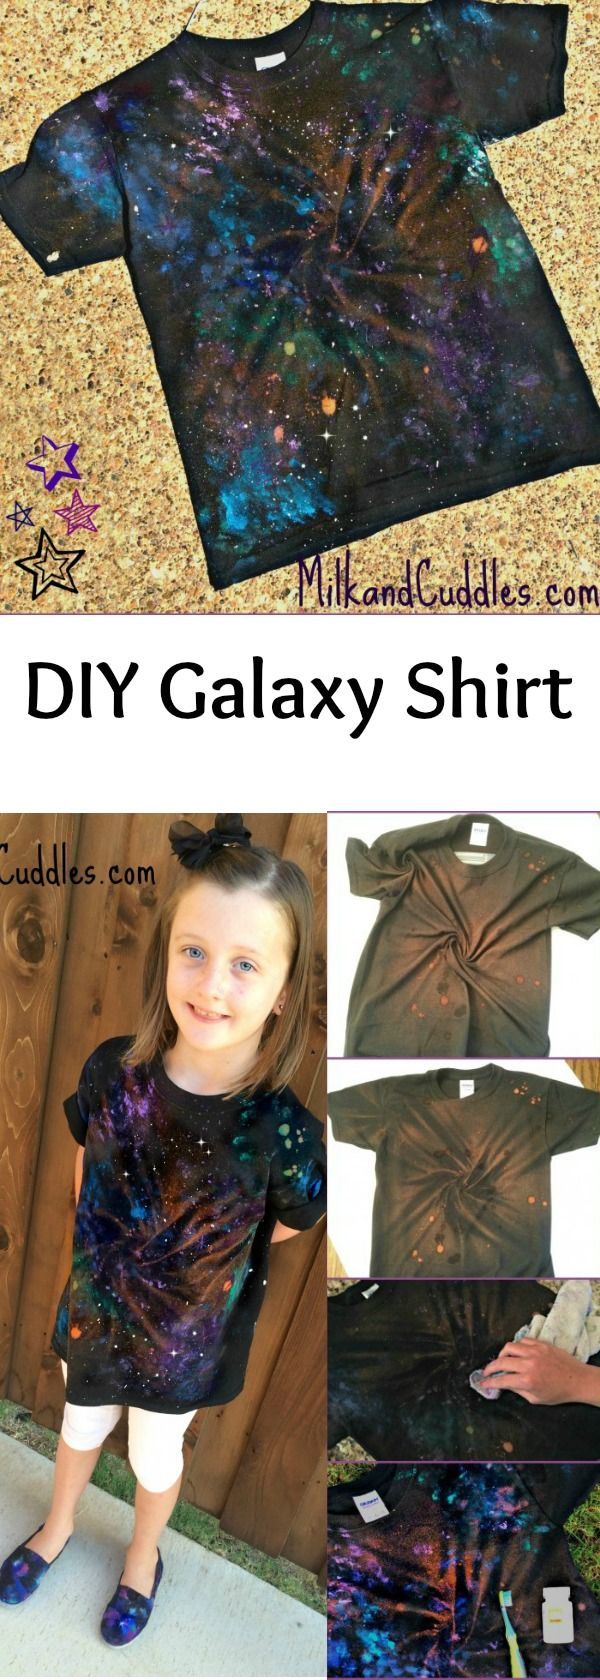 Everyday Best Shares A Dr Who And Star Wars Craft Diy Galaxy Shirt